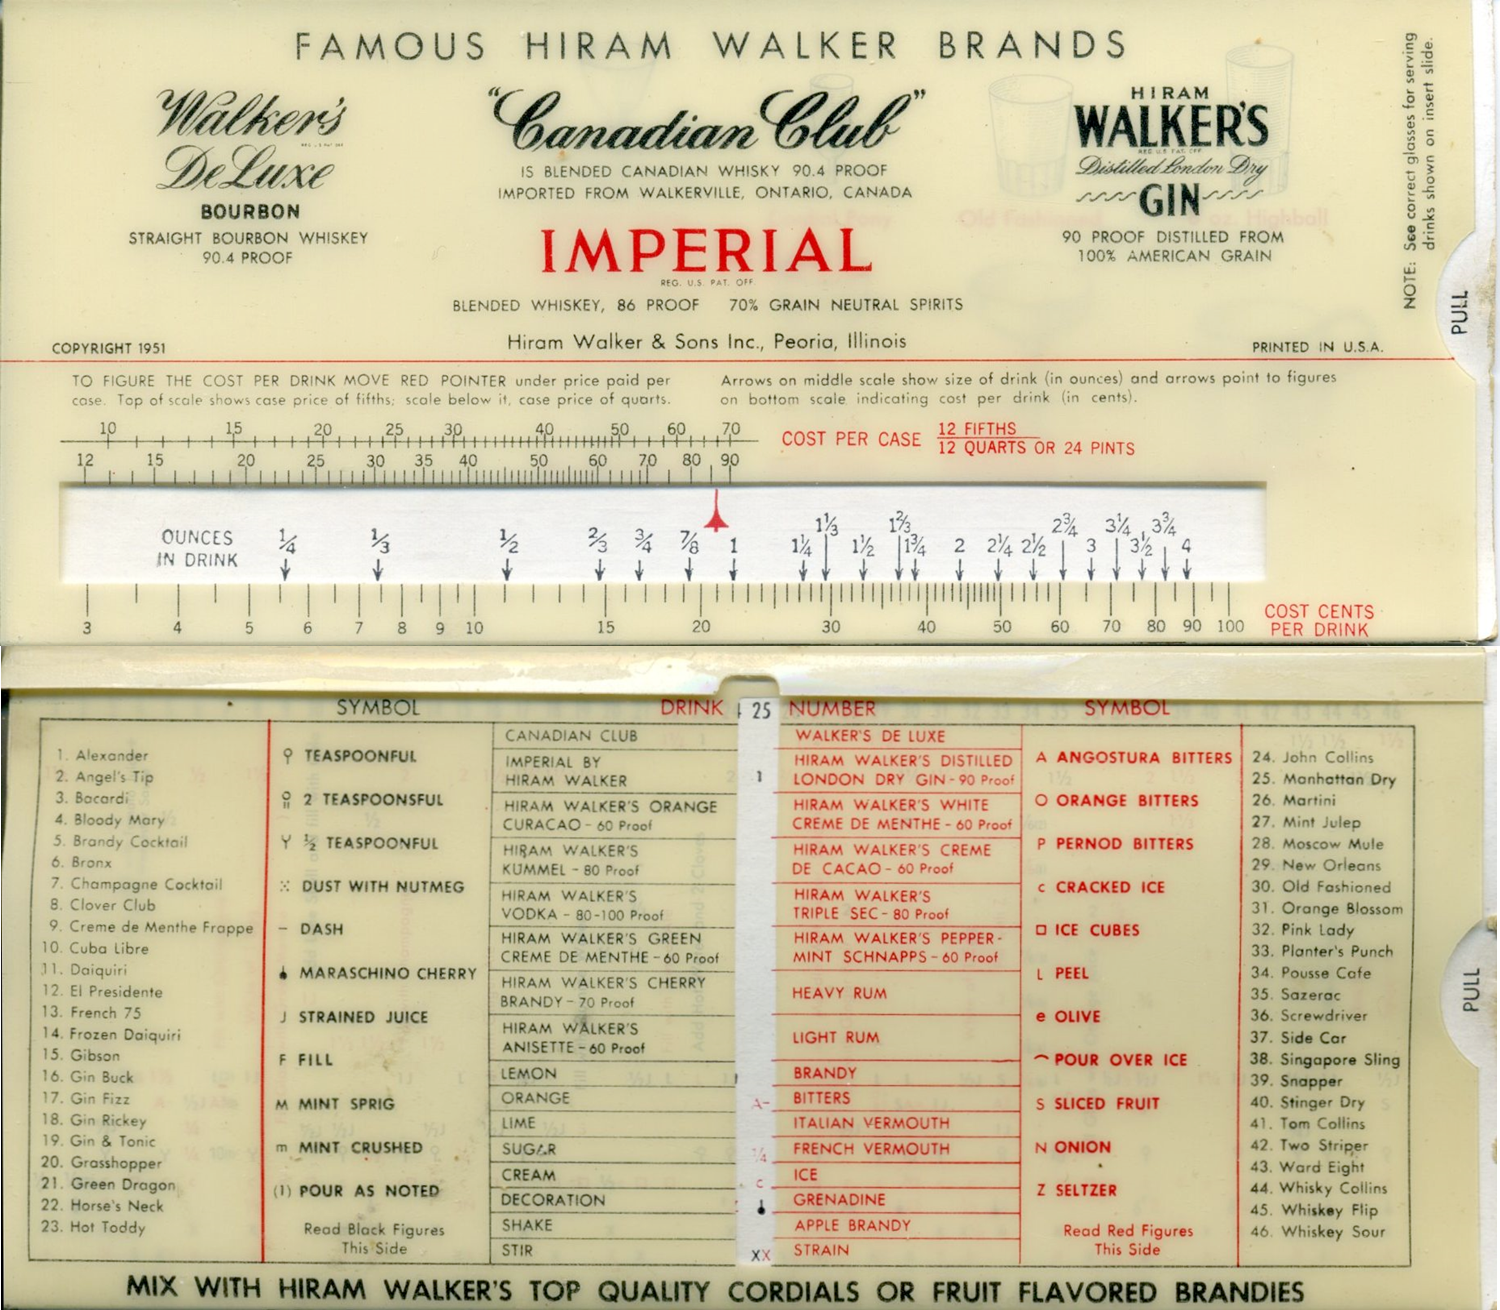 Hiram Walker promotional slide-rule